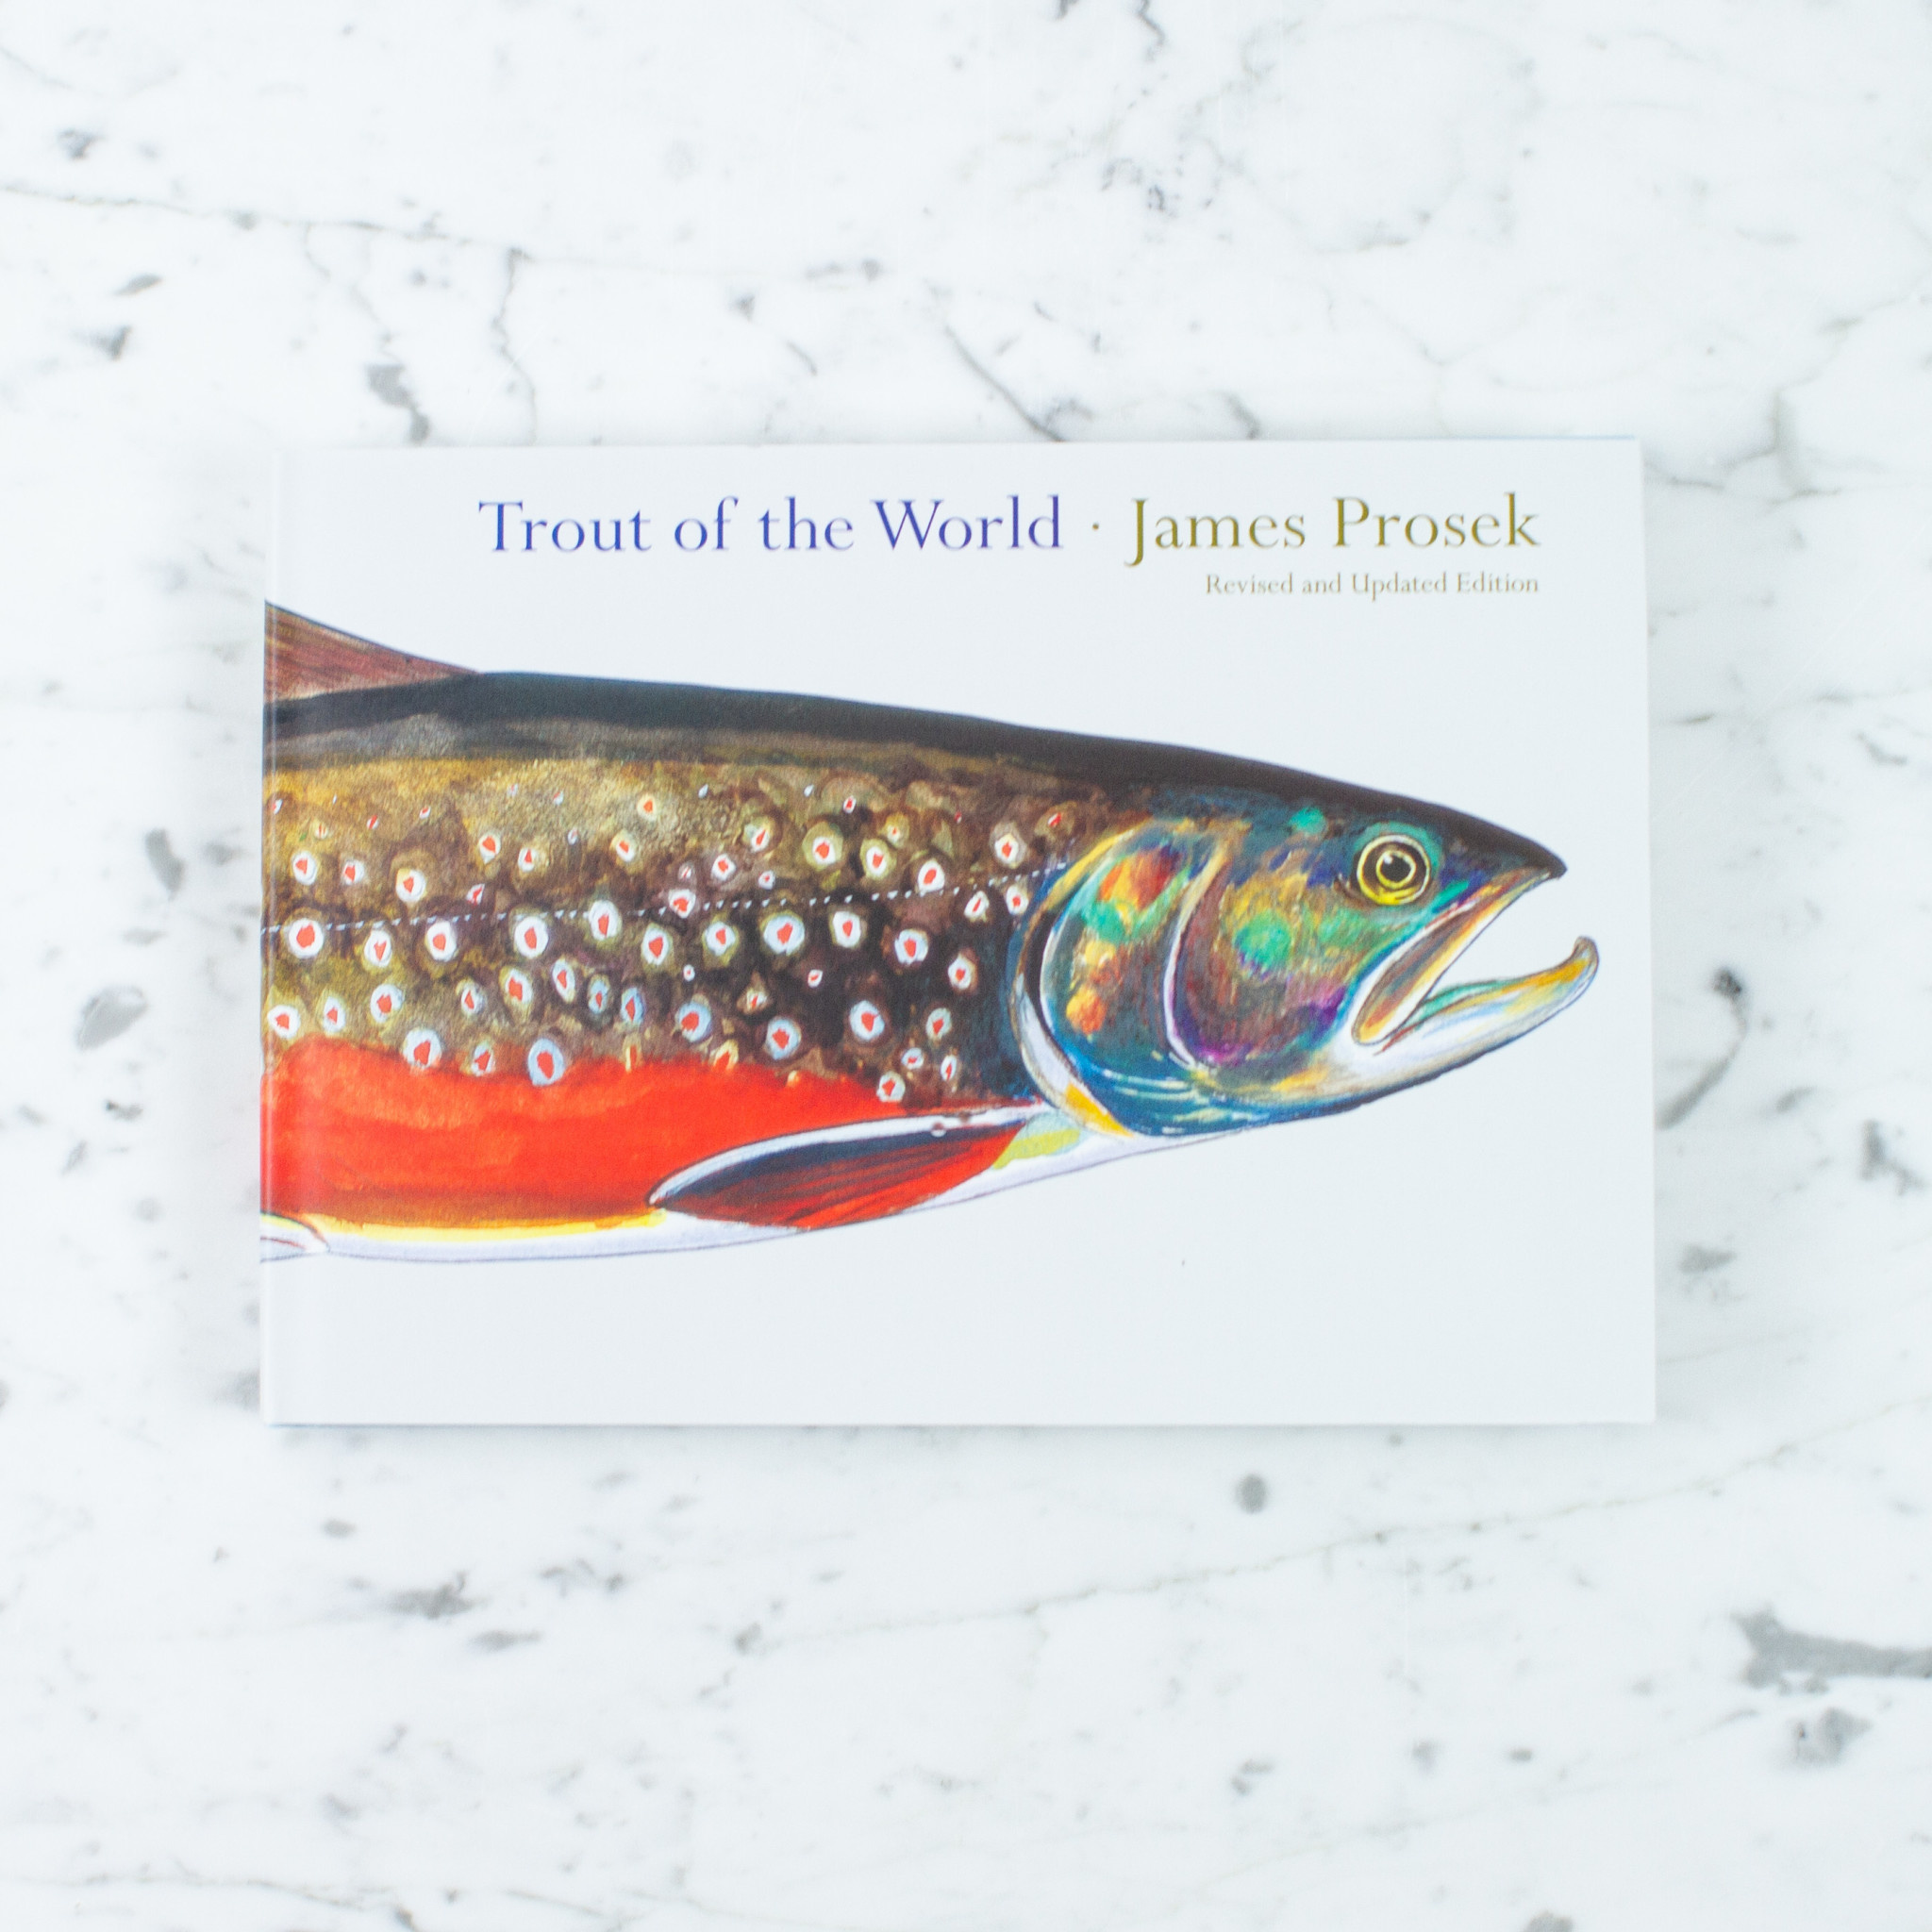 Trout of the World by James Prosek